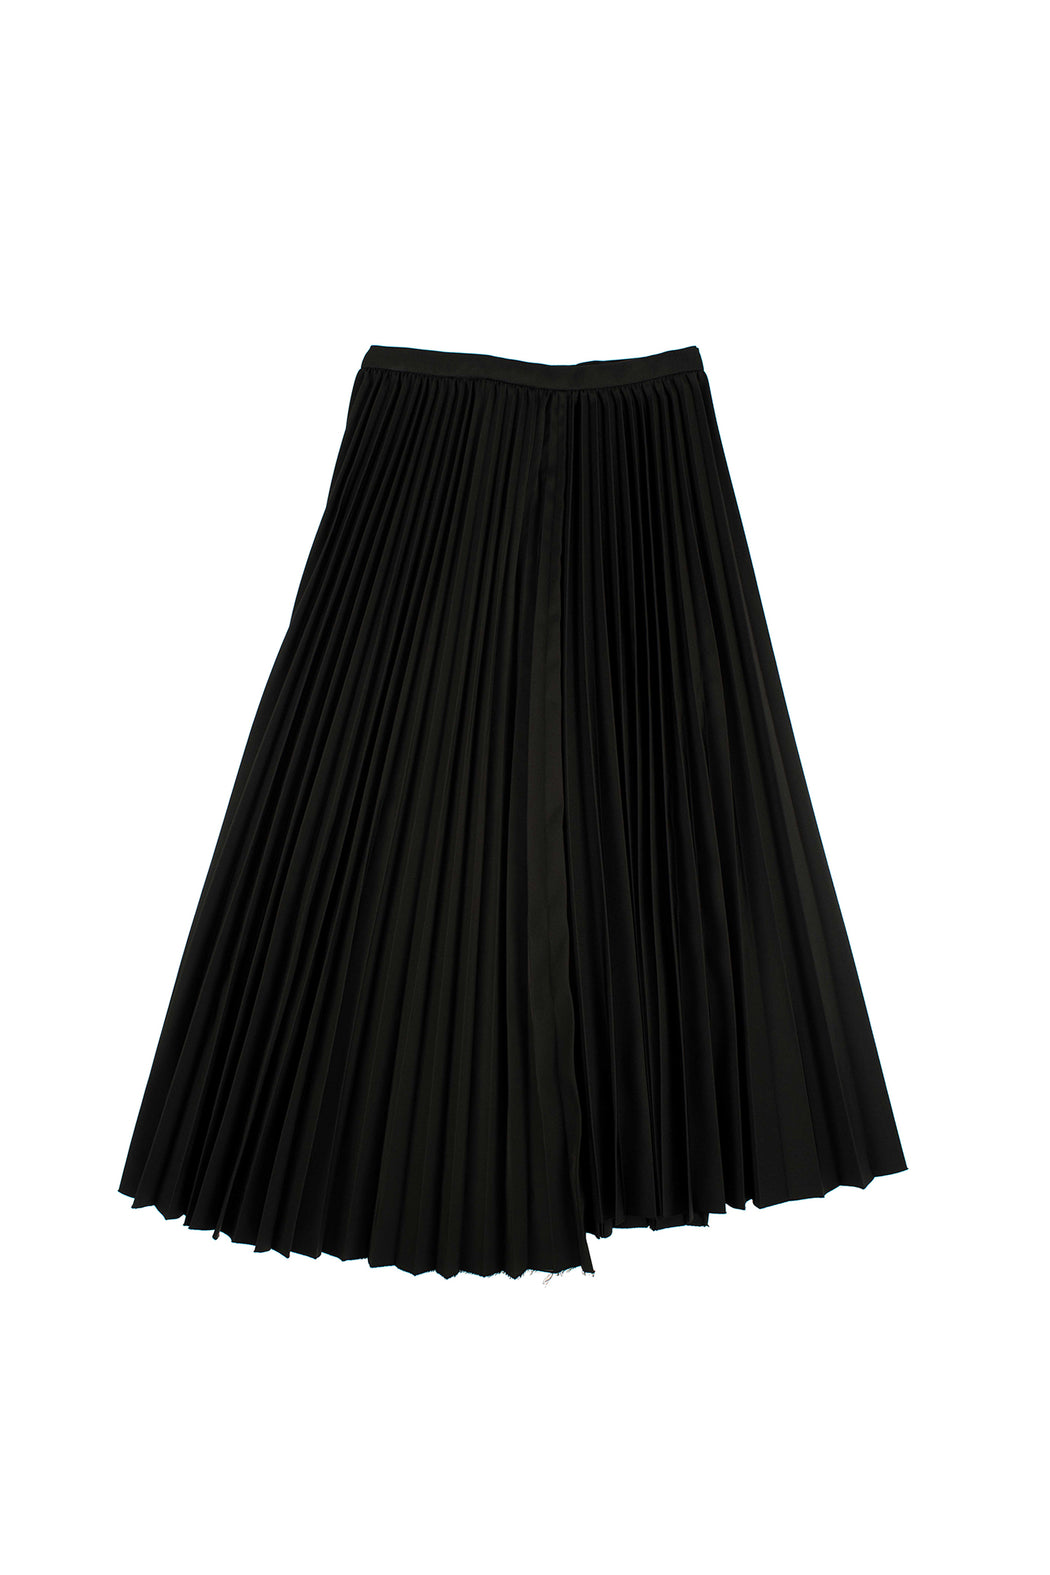 Unbalanced Hem Skirt - Black